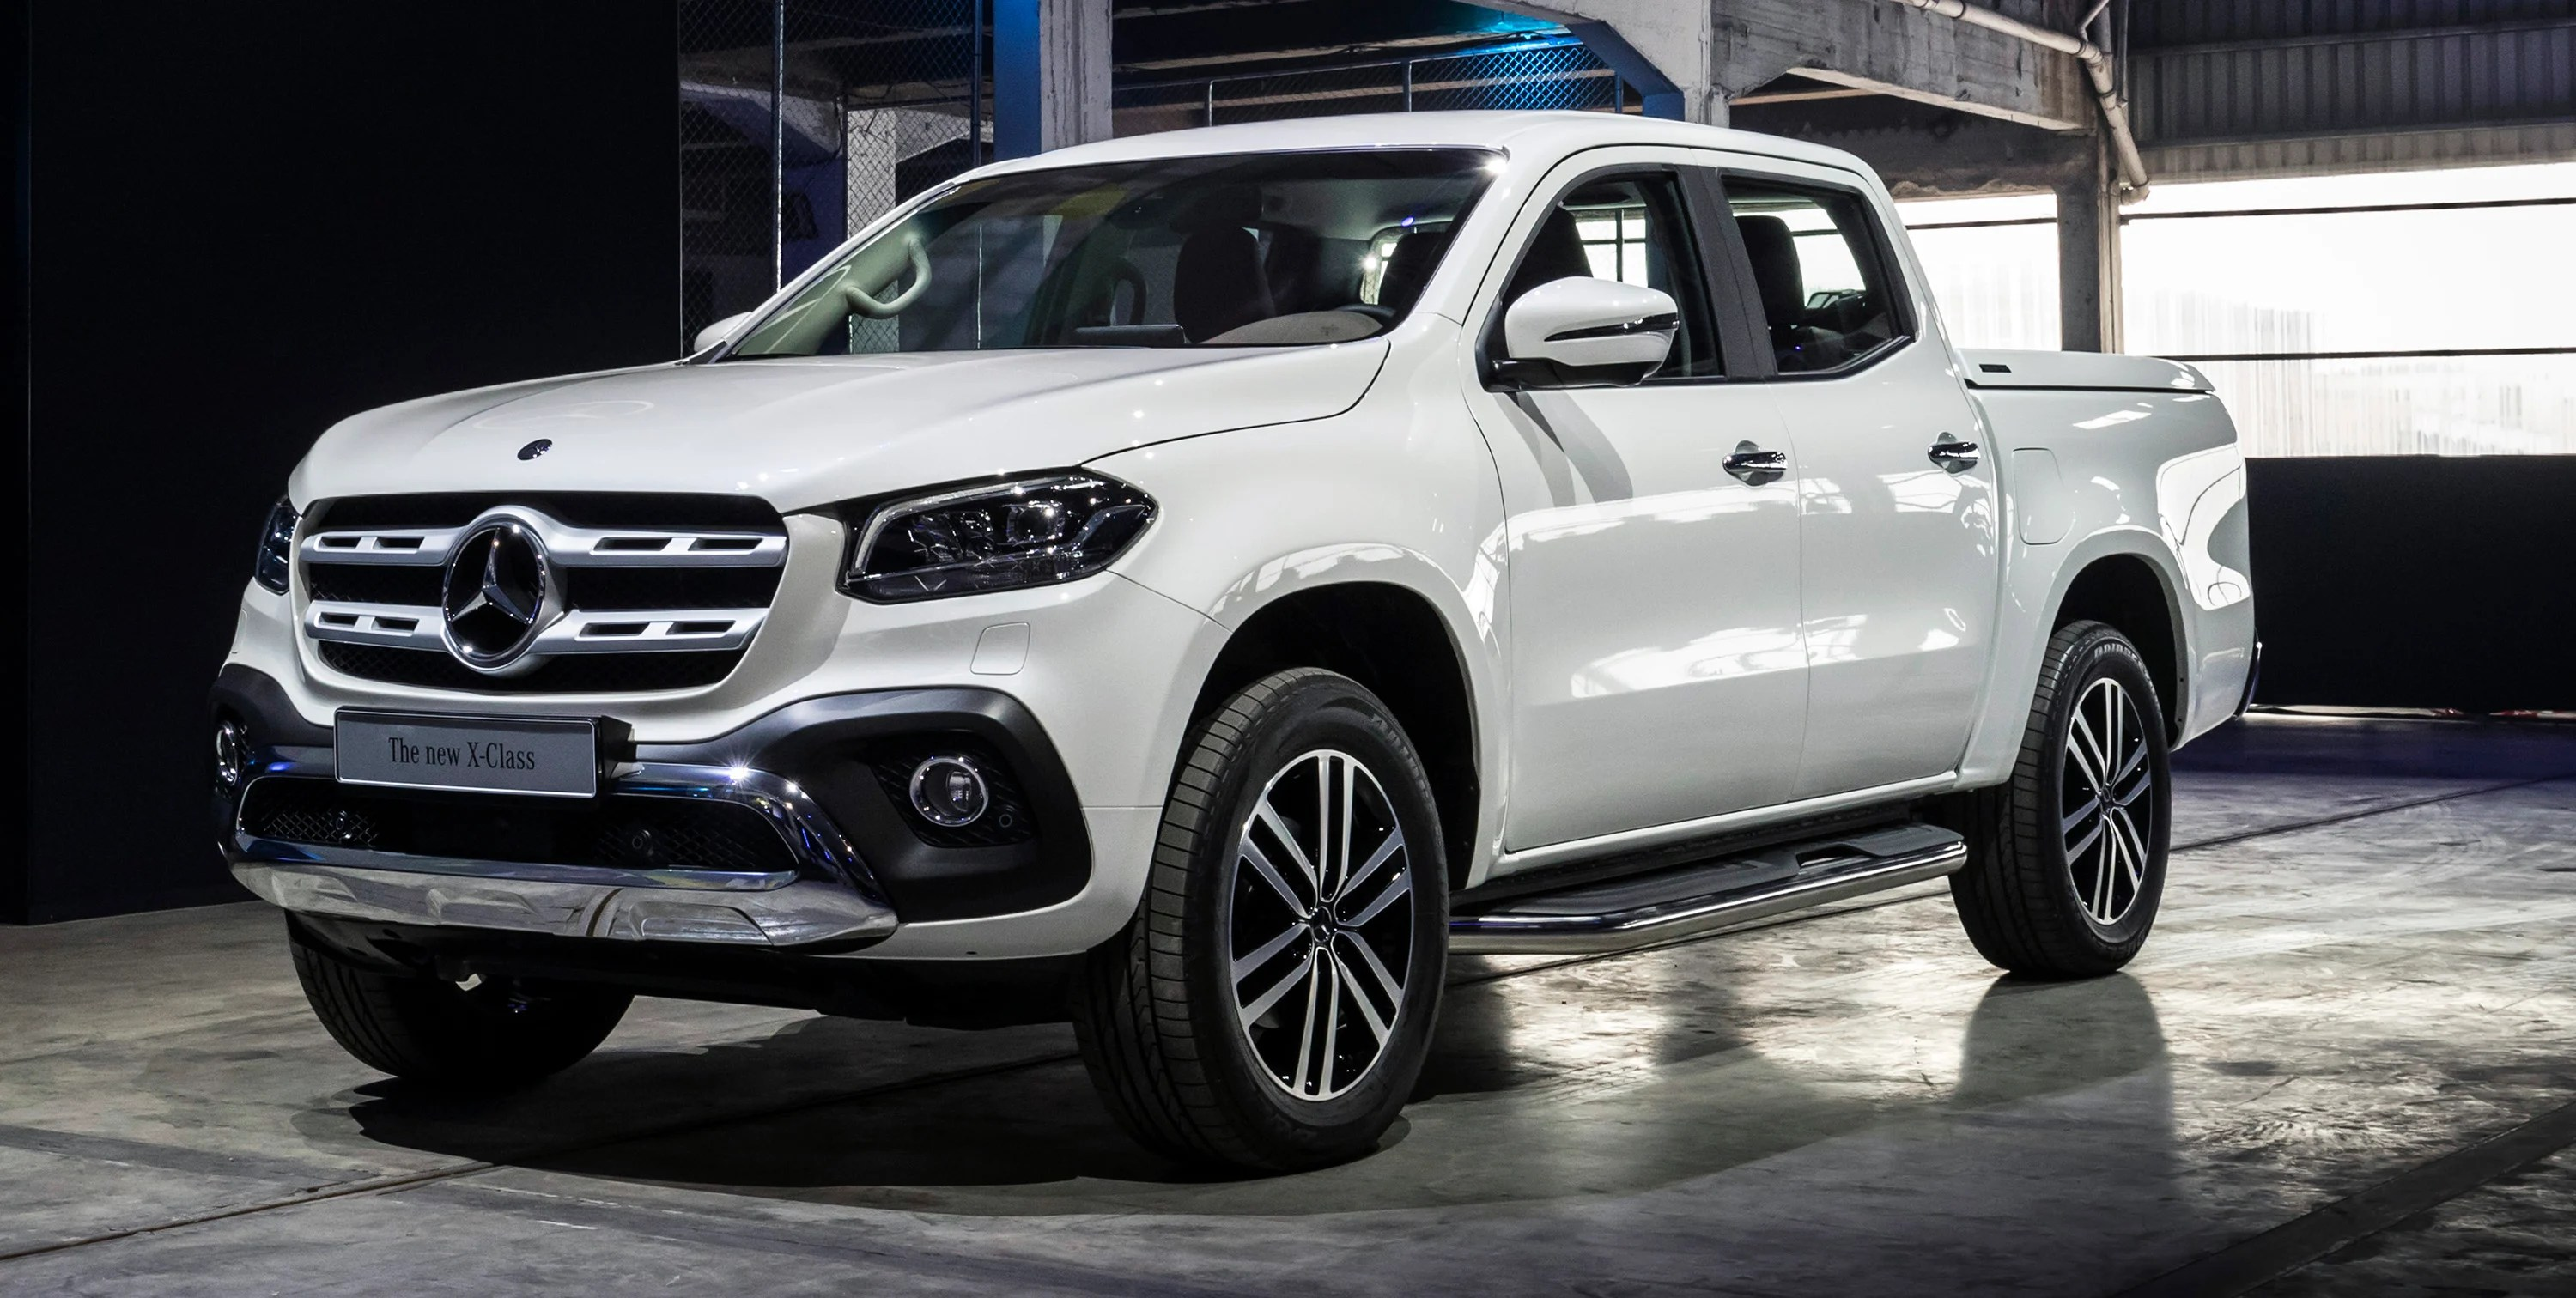 Mb X? S? 2018 Mercedes Benz X Class Revealed Photos